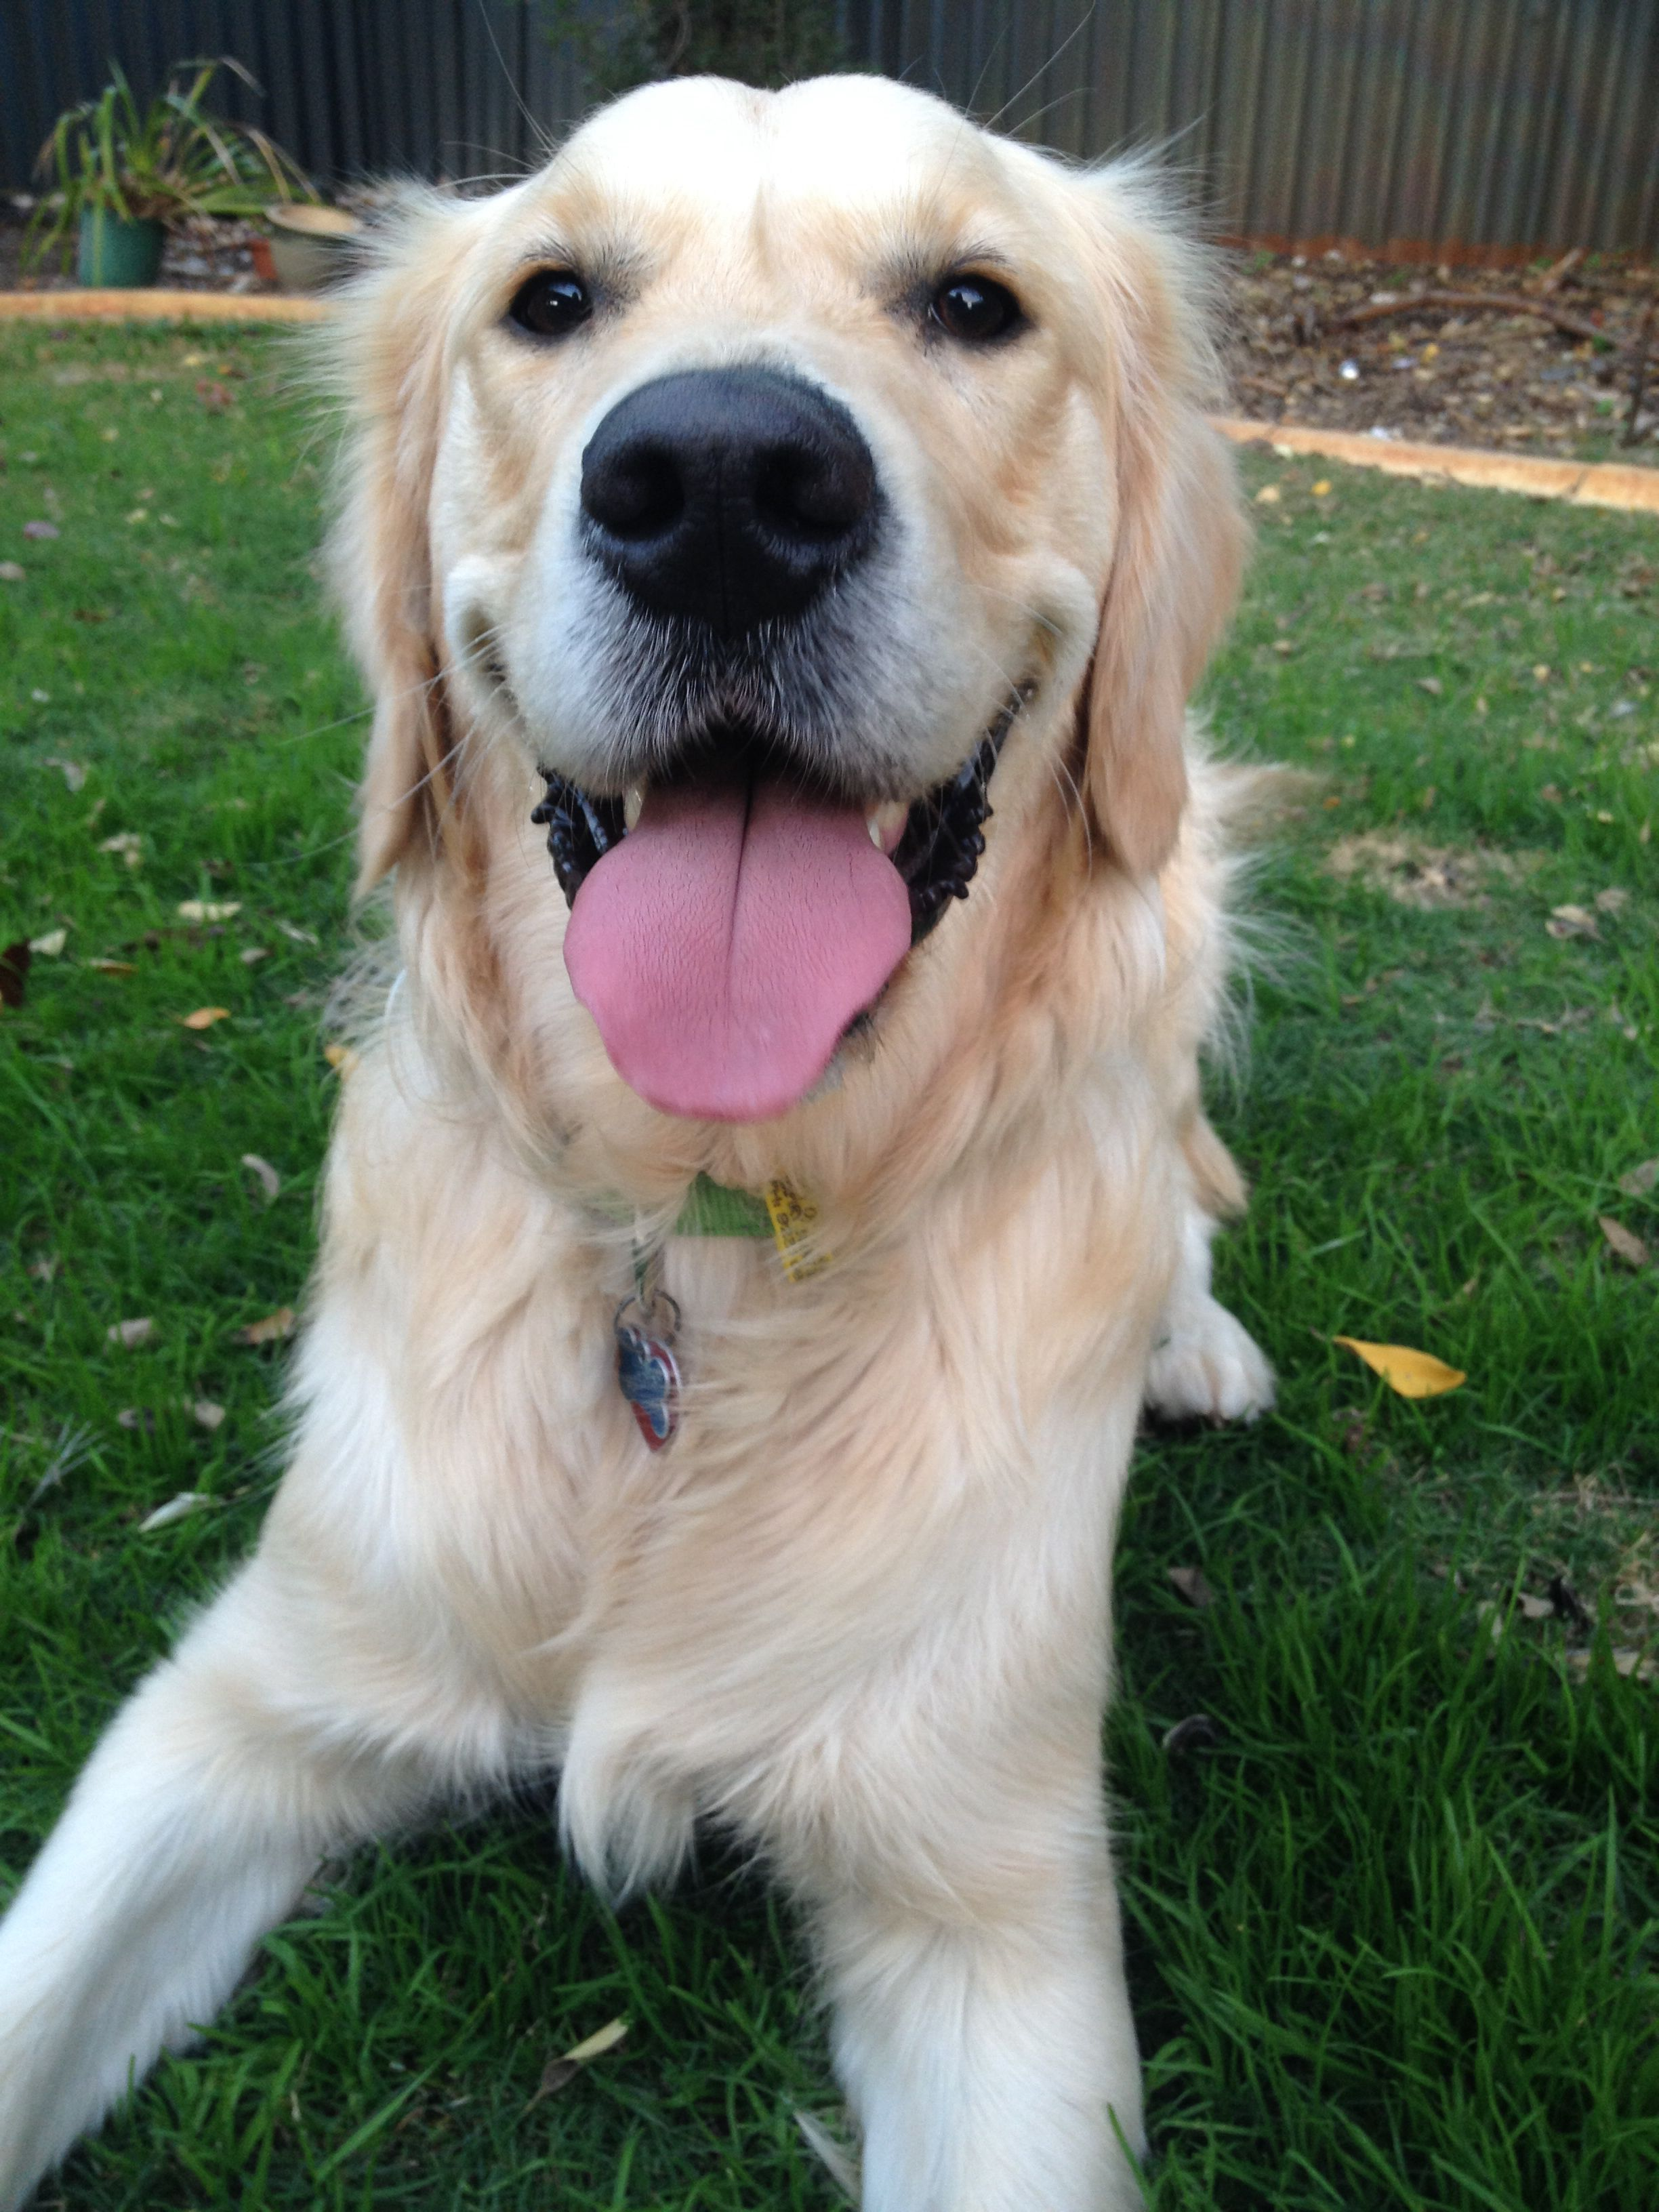 Golden Retriever Golden Retriever Golden Retriever Puppy Animals And Pets